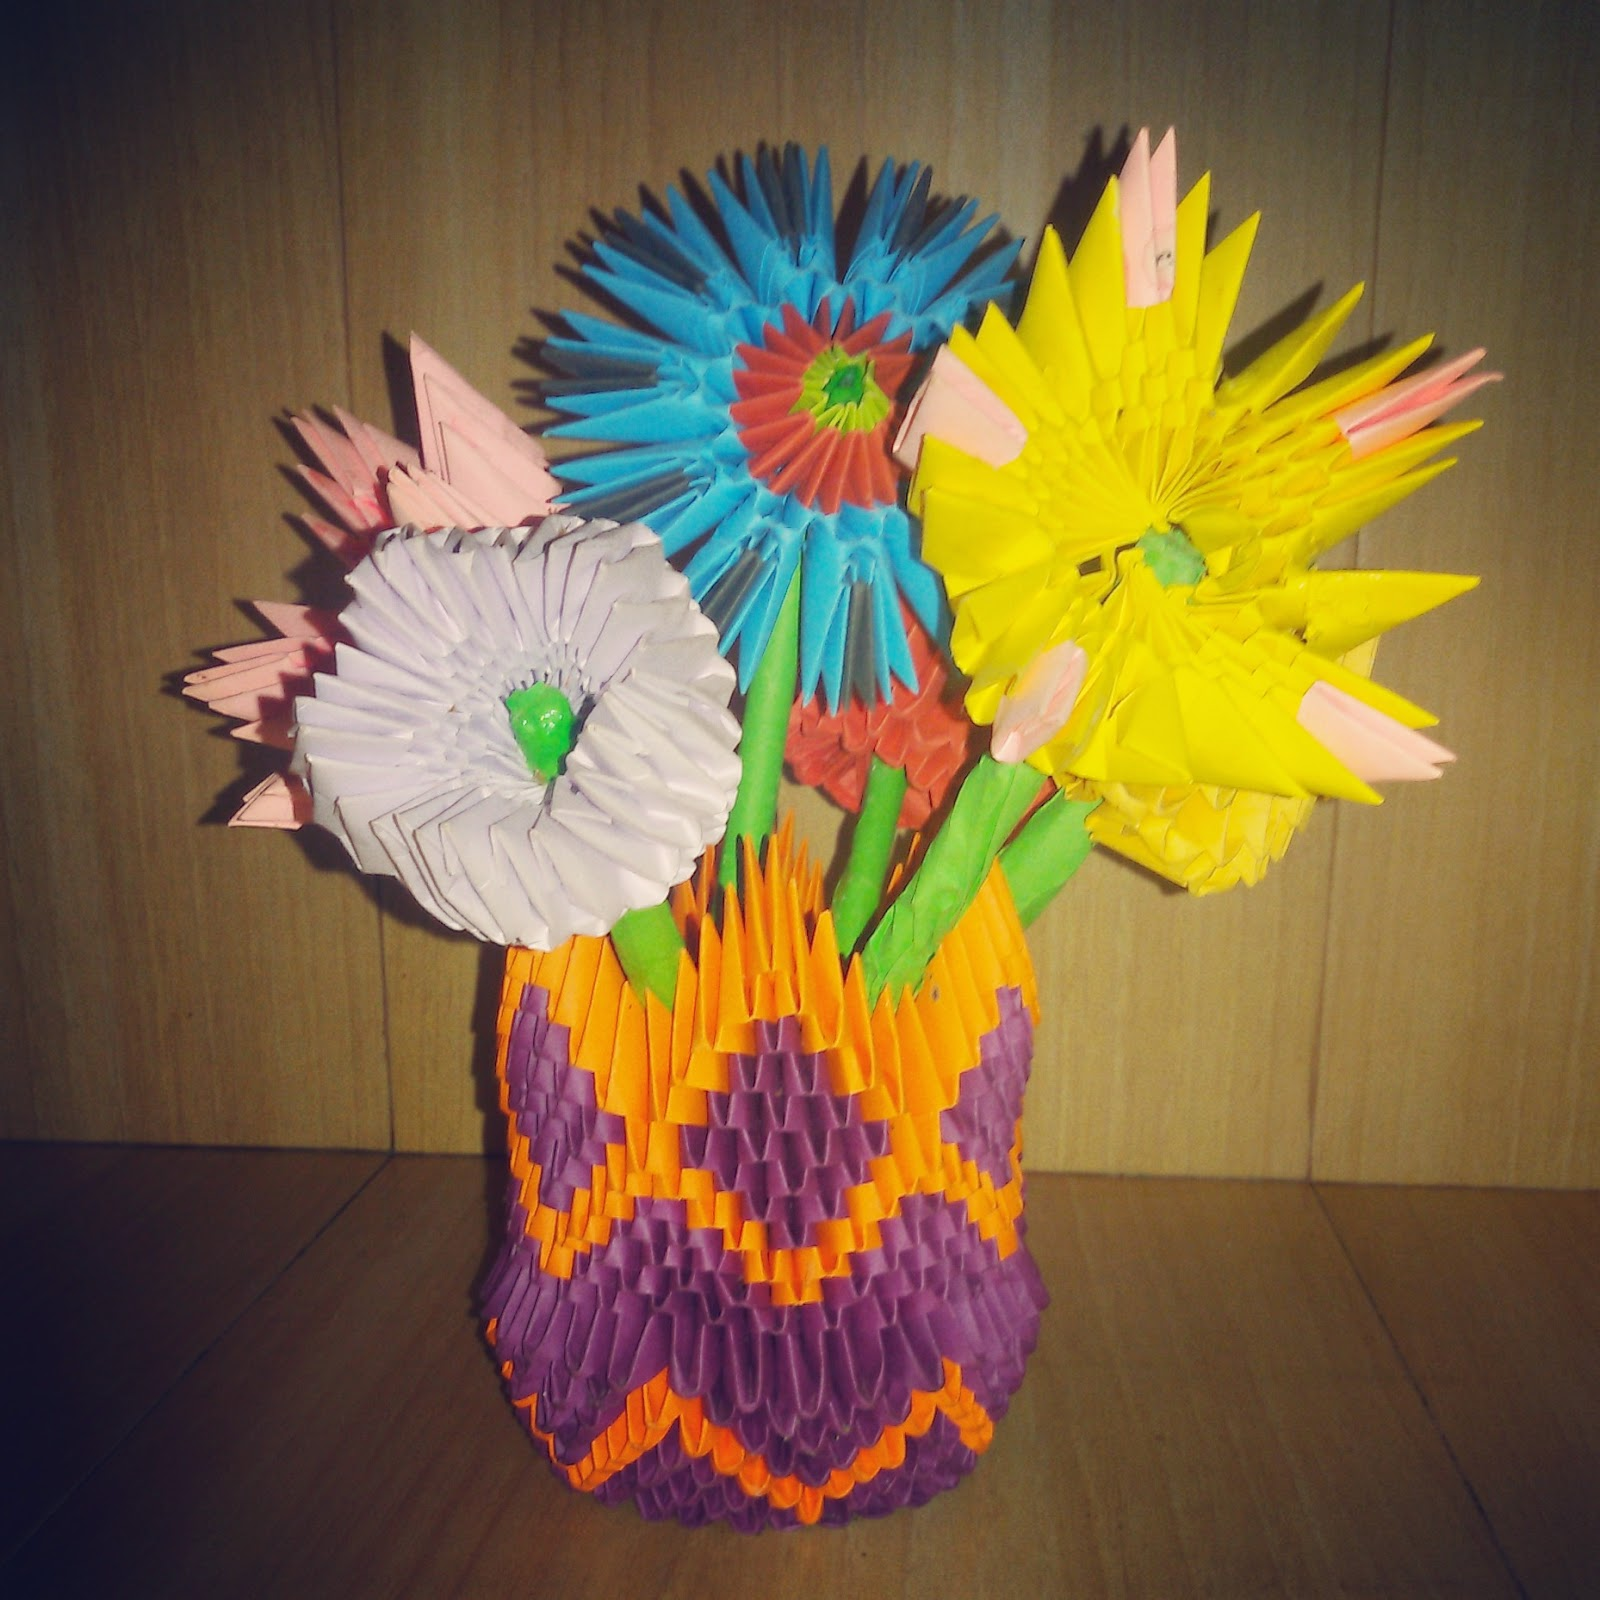 3d Origami Flower Vase, 3d Origami Vase with Flowers, 3d Origami ... | 1600x1600